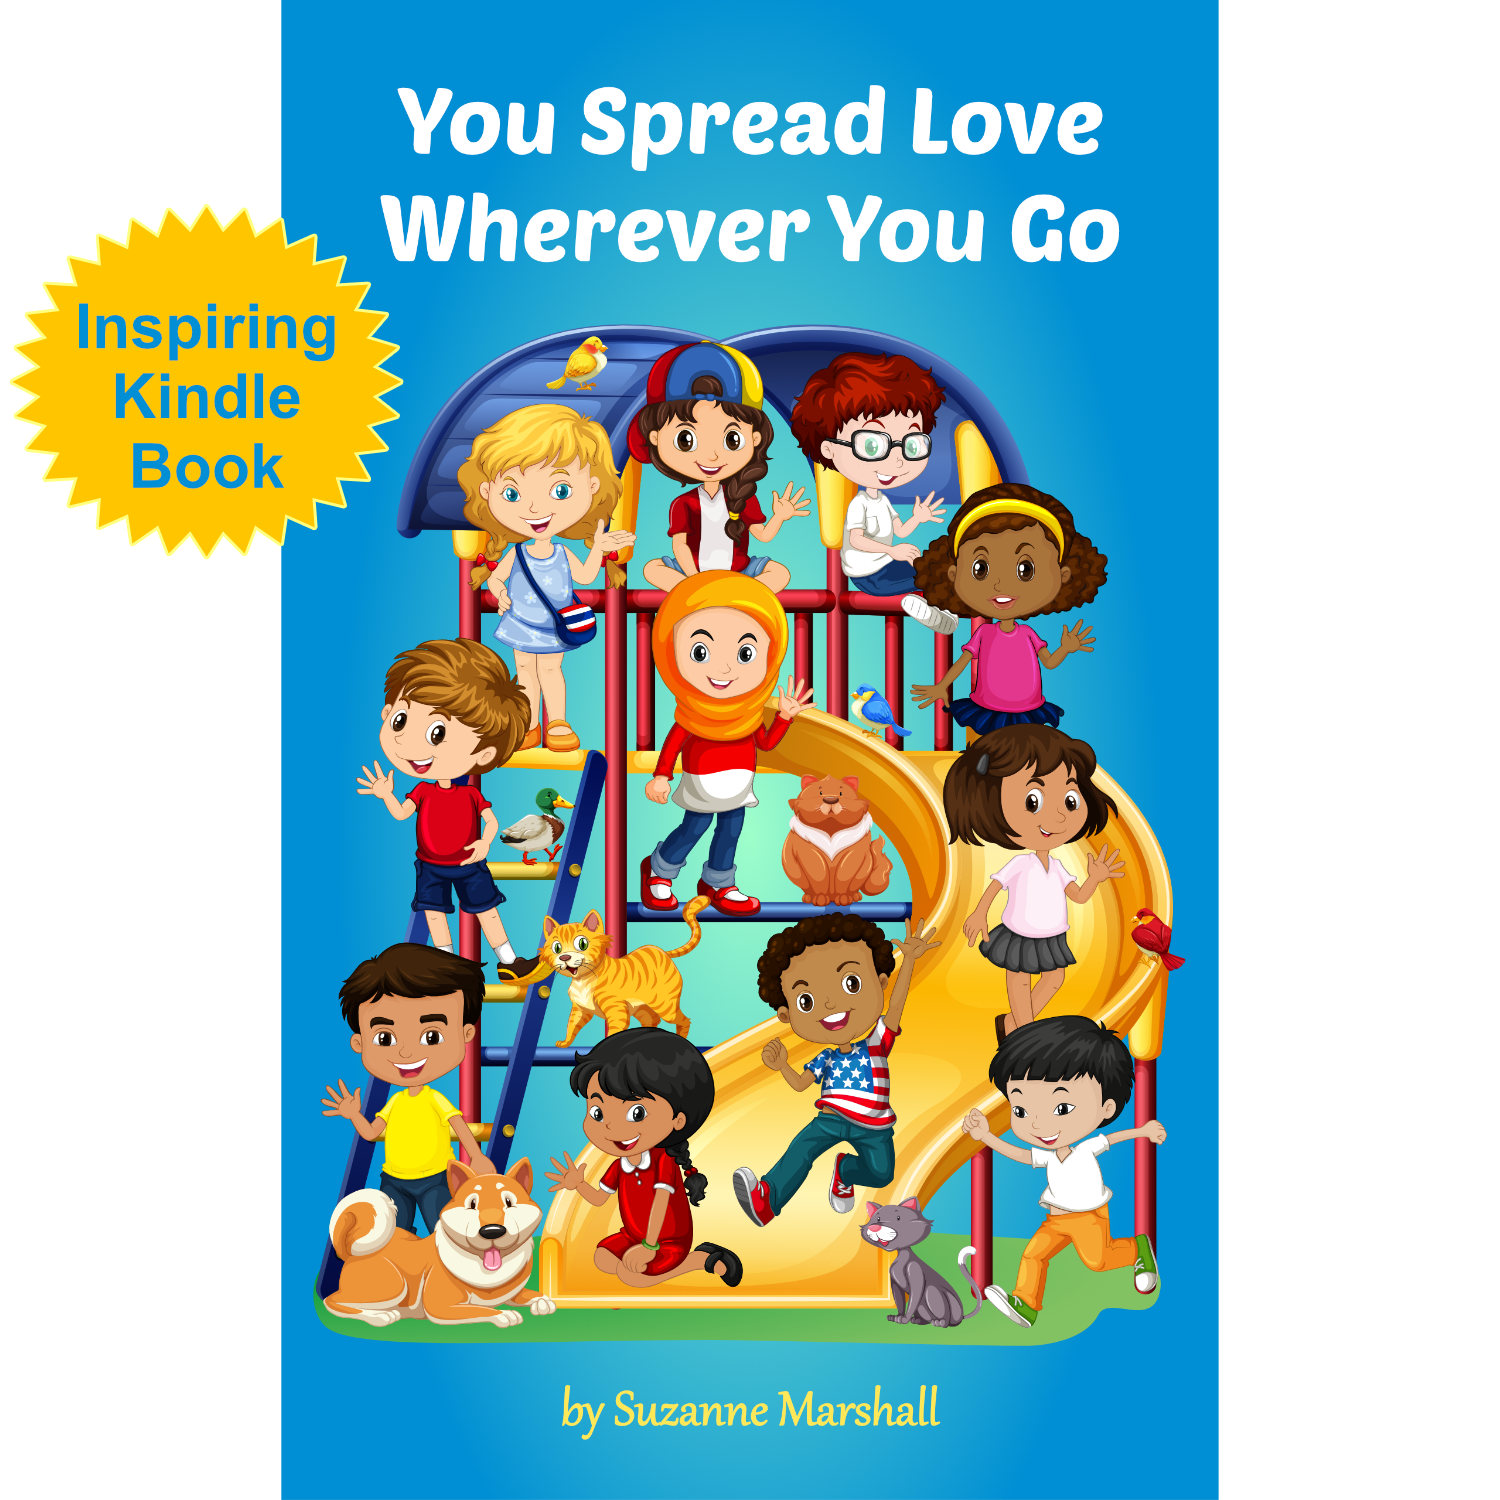 You Spread Love Wherever You Go - Kindle Unlimited Kids Book with a Moral Story for Kids